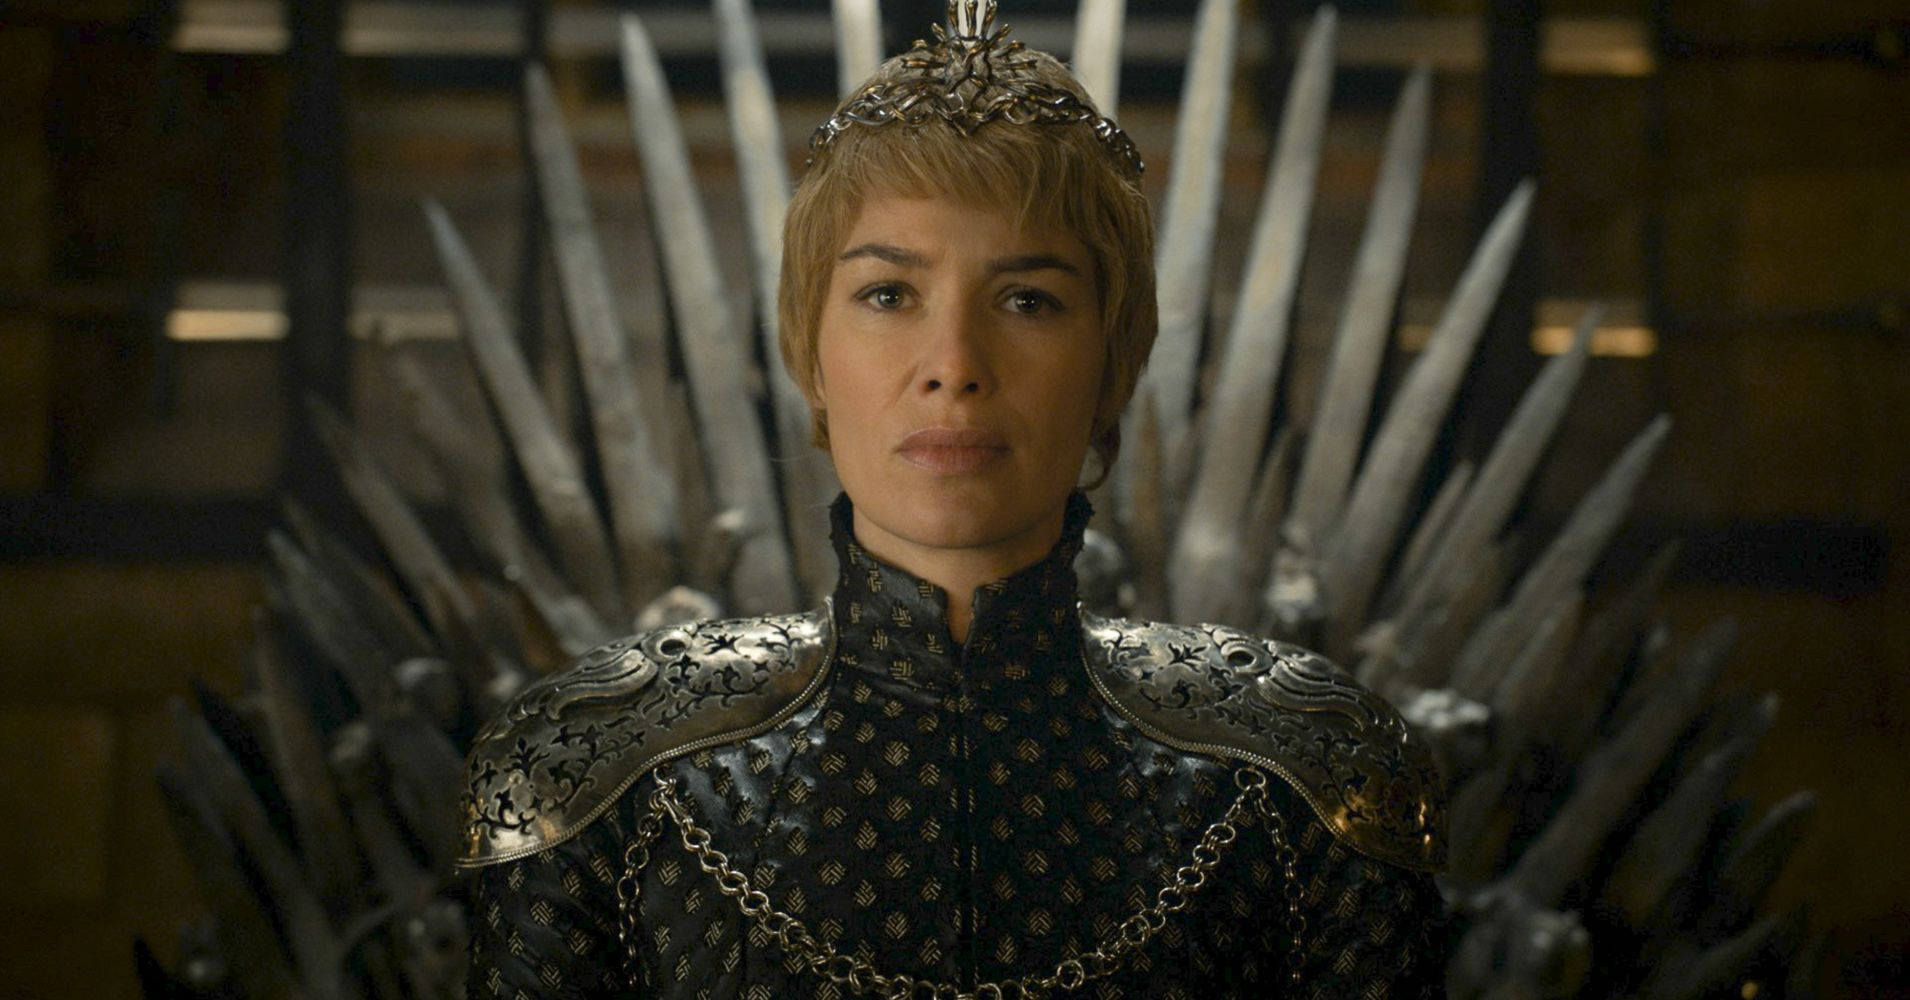 Lena Headey as Cersei Lannister sitting on the throne in Game of Thrones